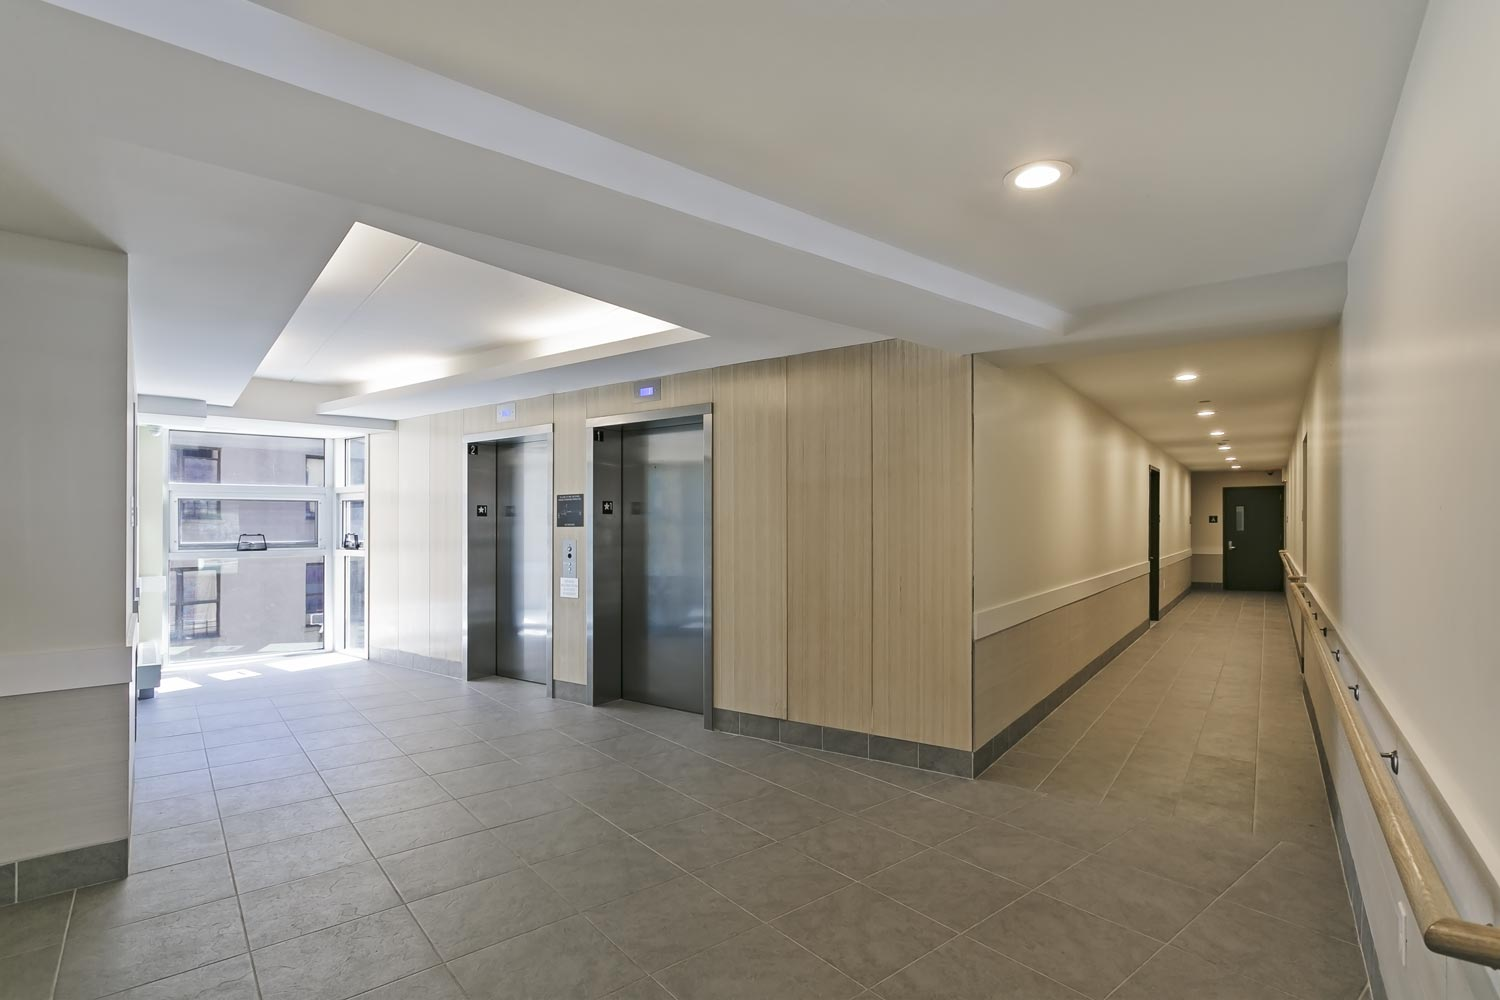 The elevator lobby features a curtain wall looking down on the rear yard and terrace.